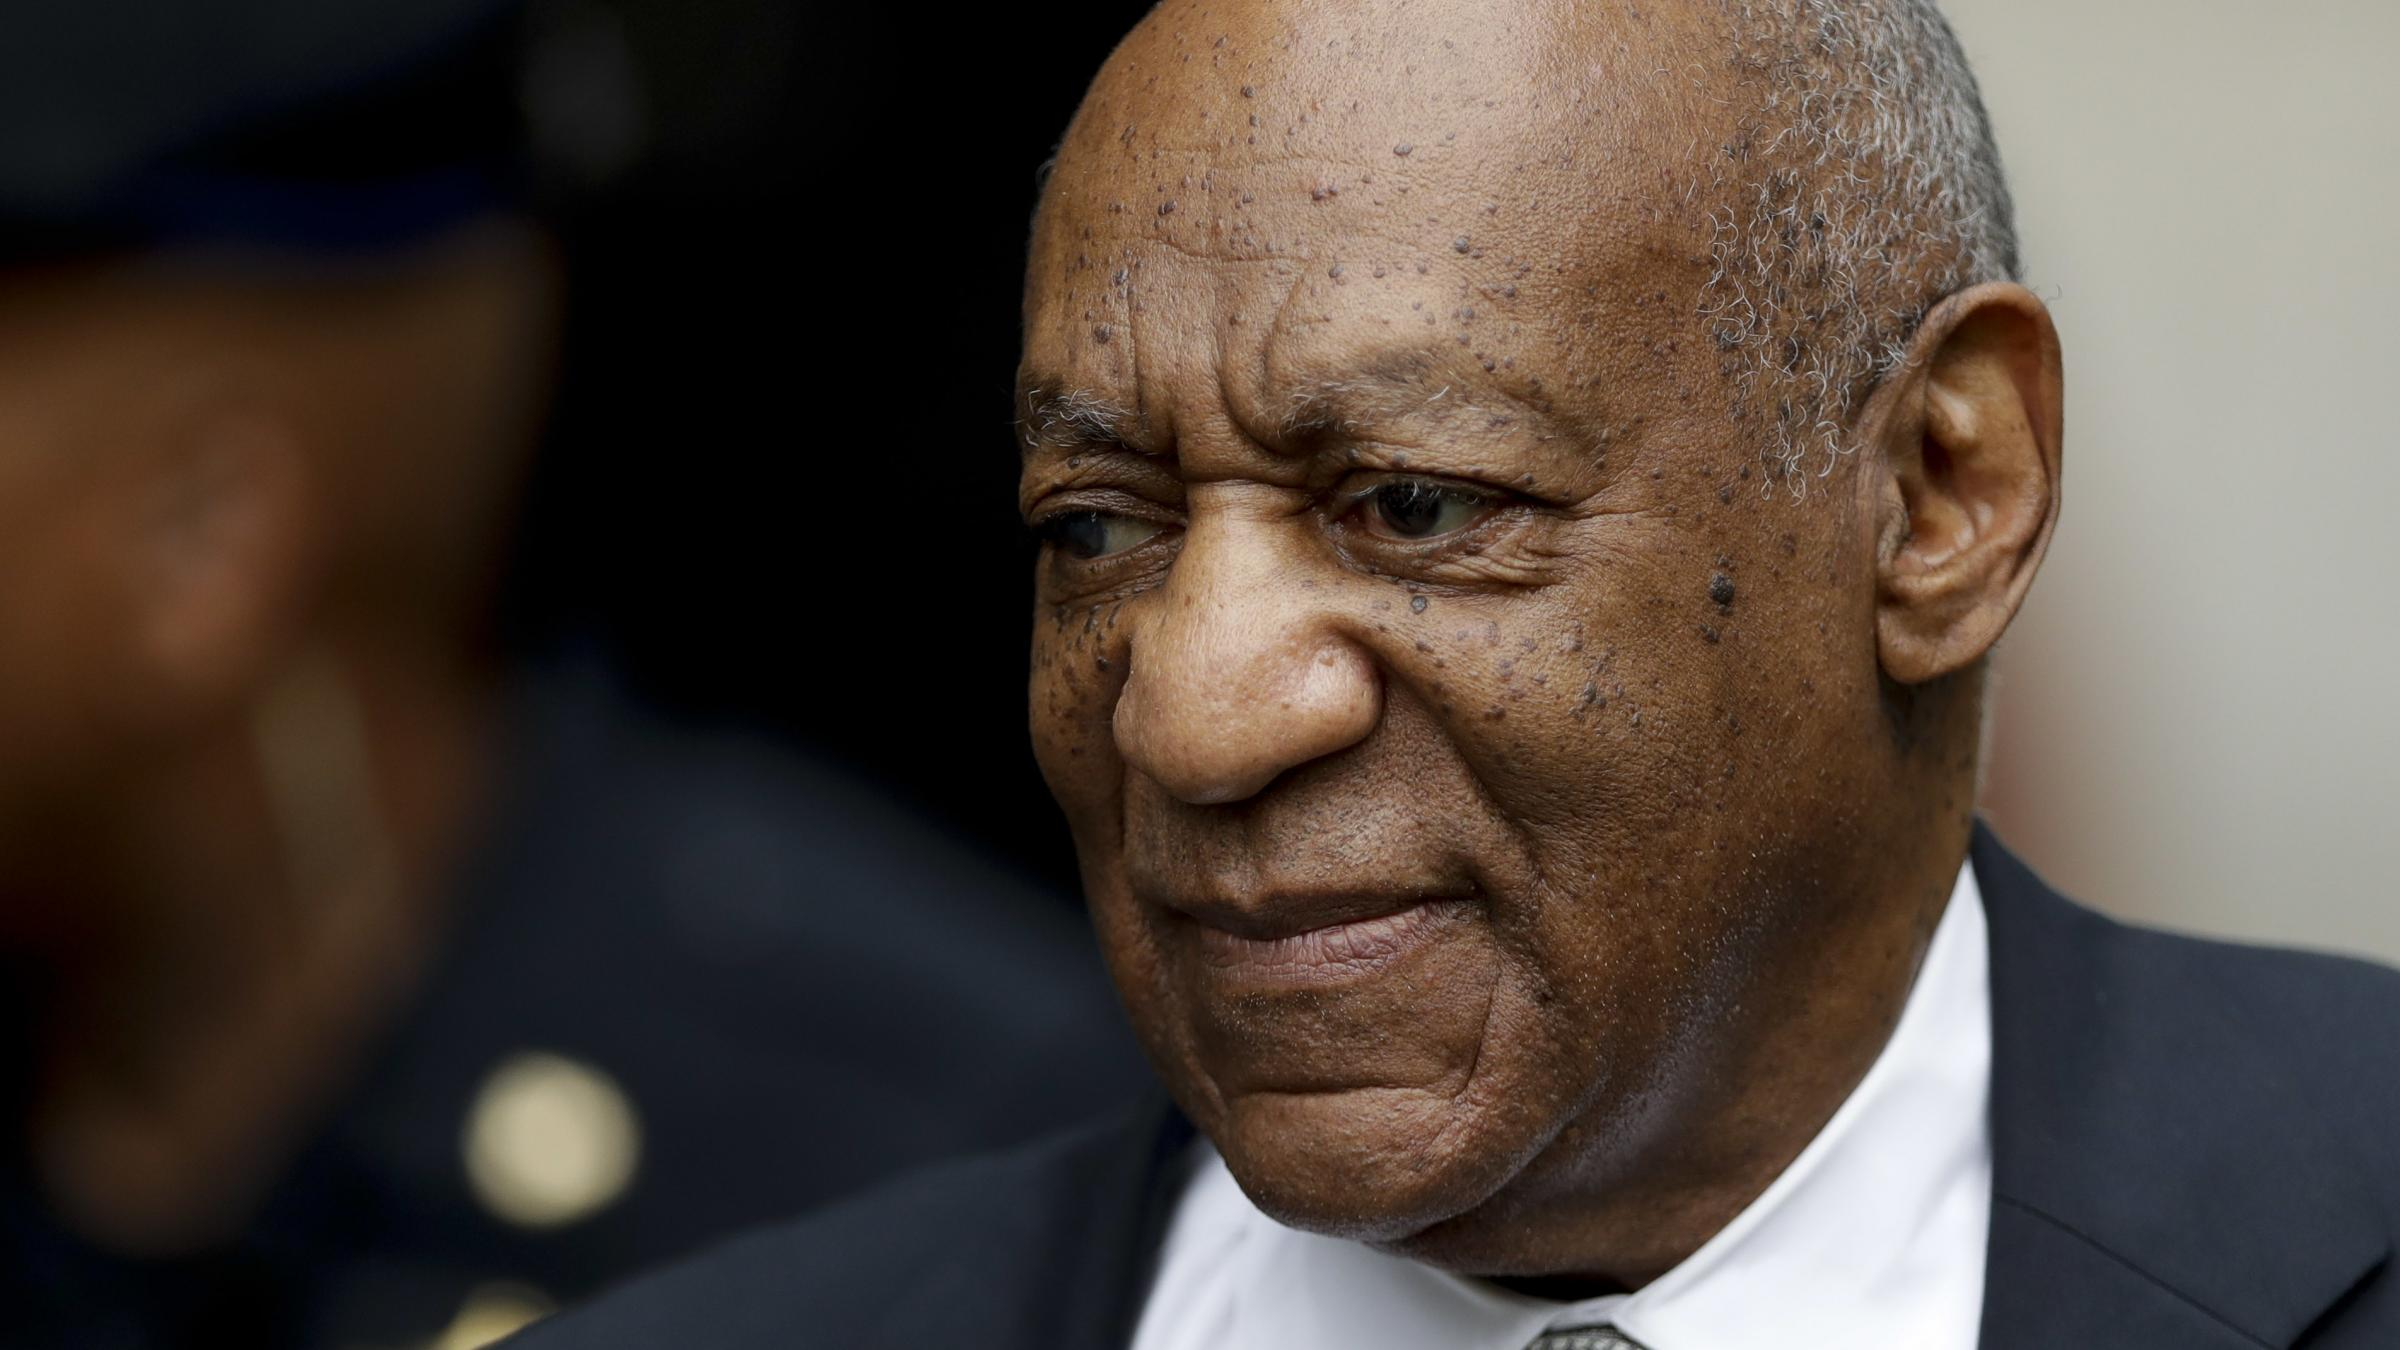 No verdict yet in Bill Cosby's trial, jurors to return on Friday